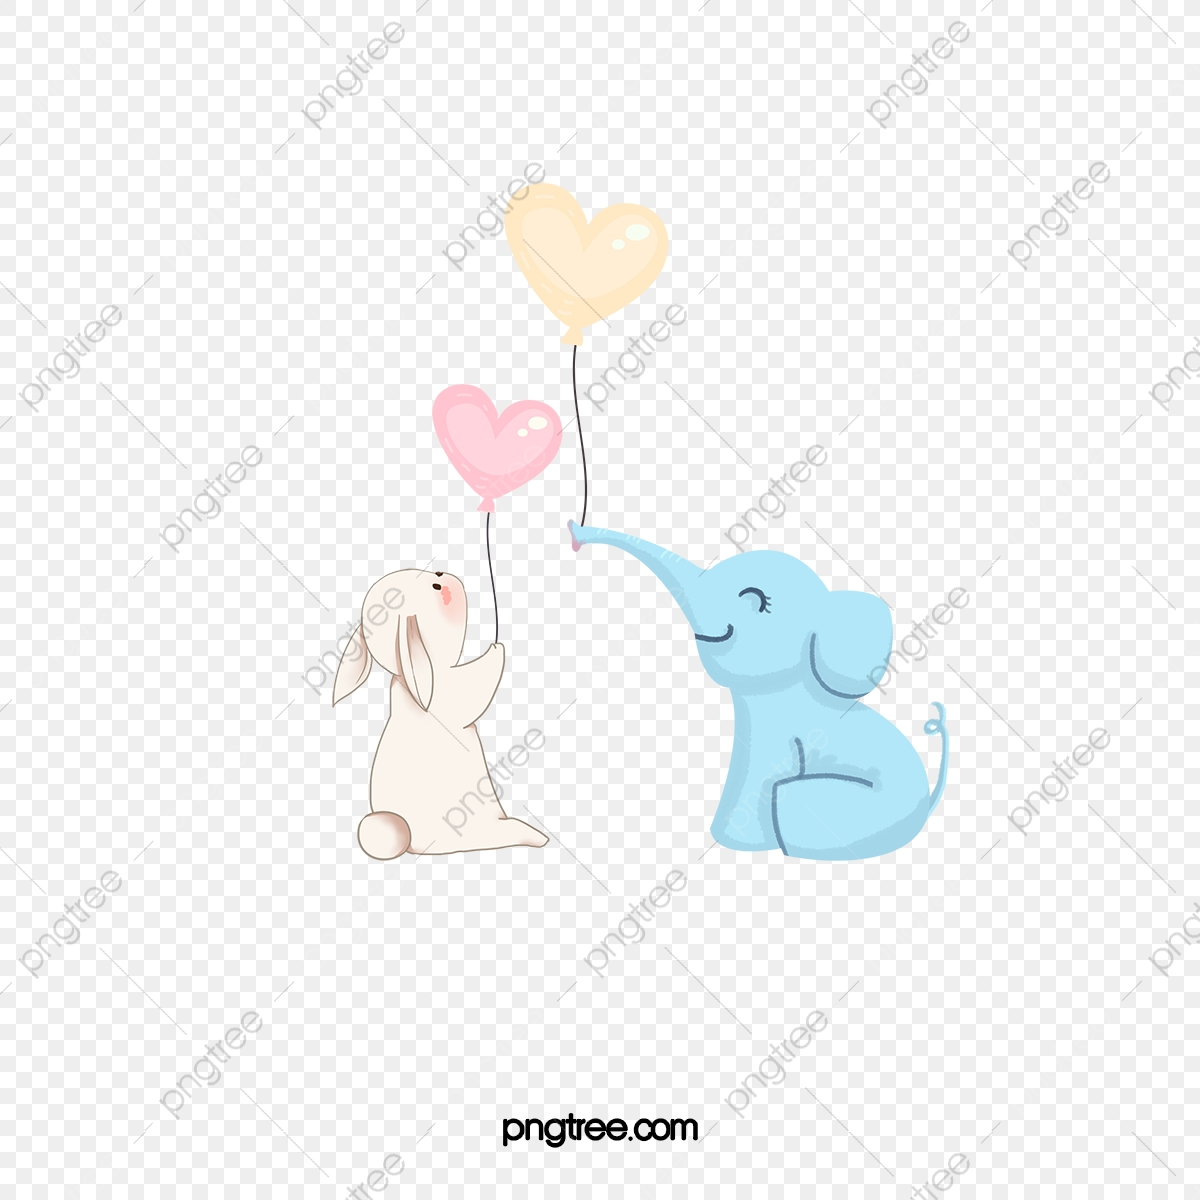 Small and . Clipart elephant bunny